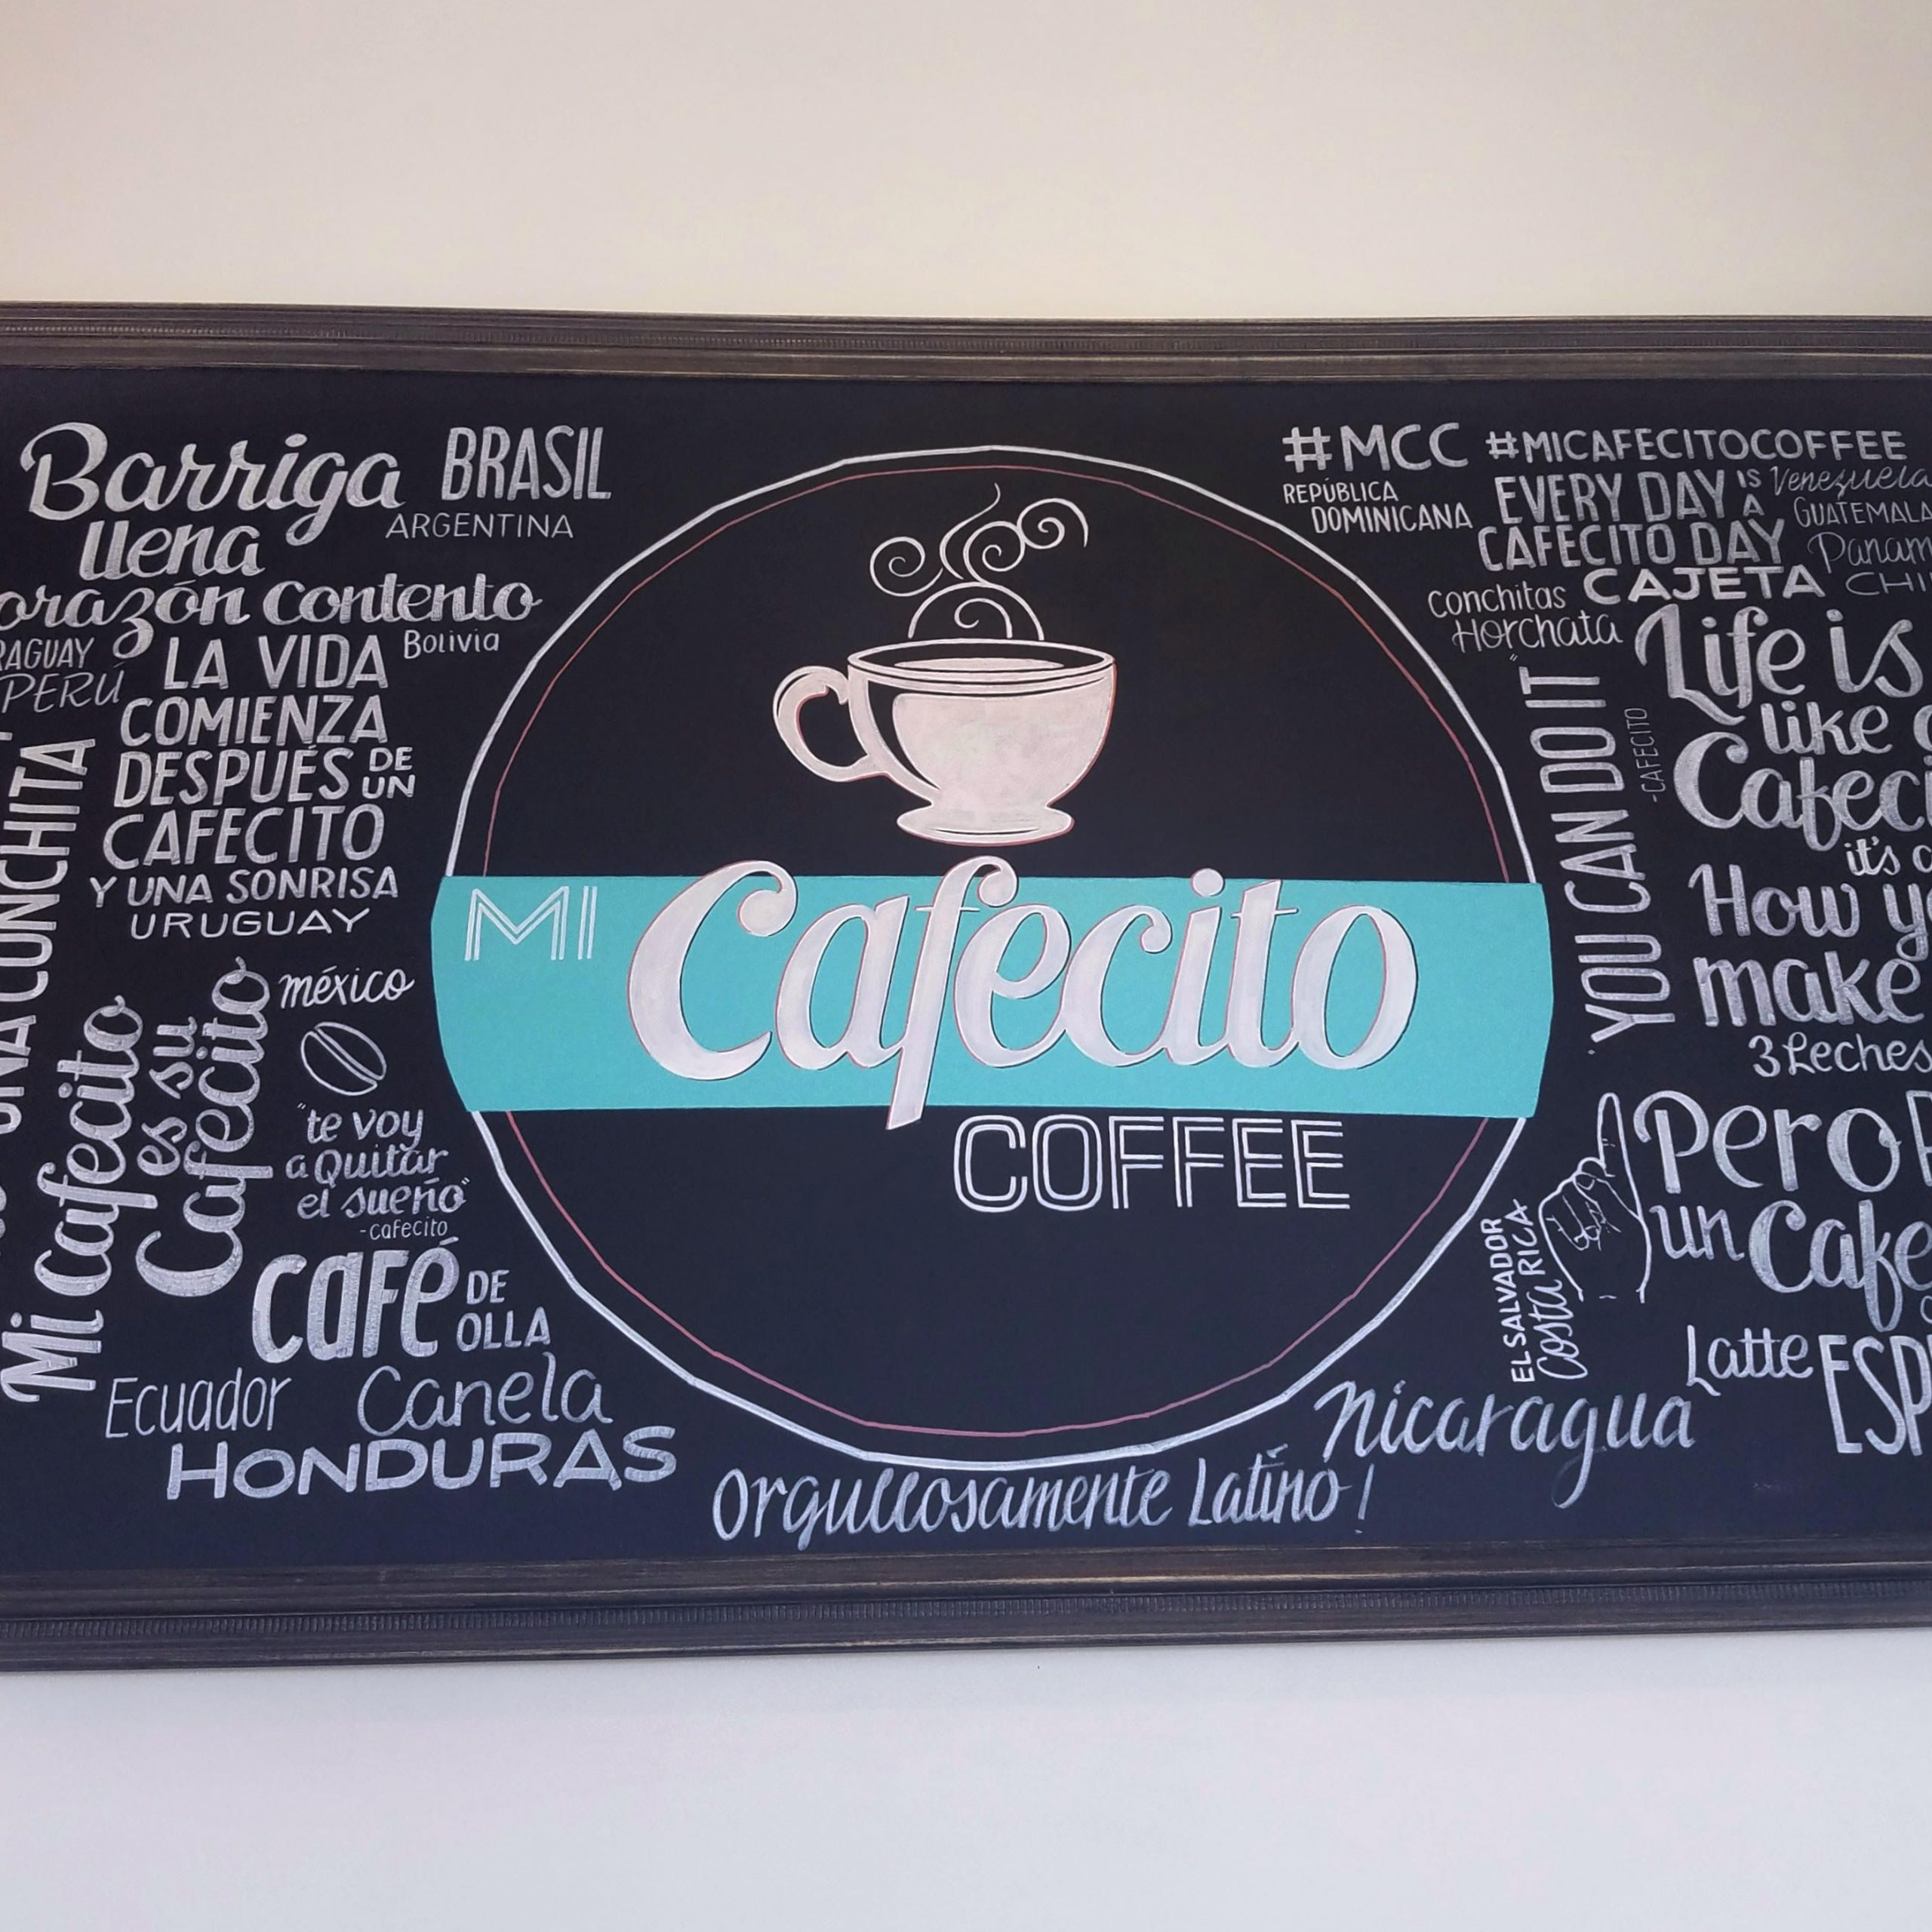 A Review Of Mi Cafecito Coffee In Downtown Pomona | Cafe Within Current Blended Fabric The Pomona Wall Hangings (View 17 of 20)